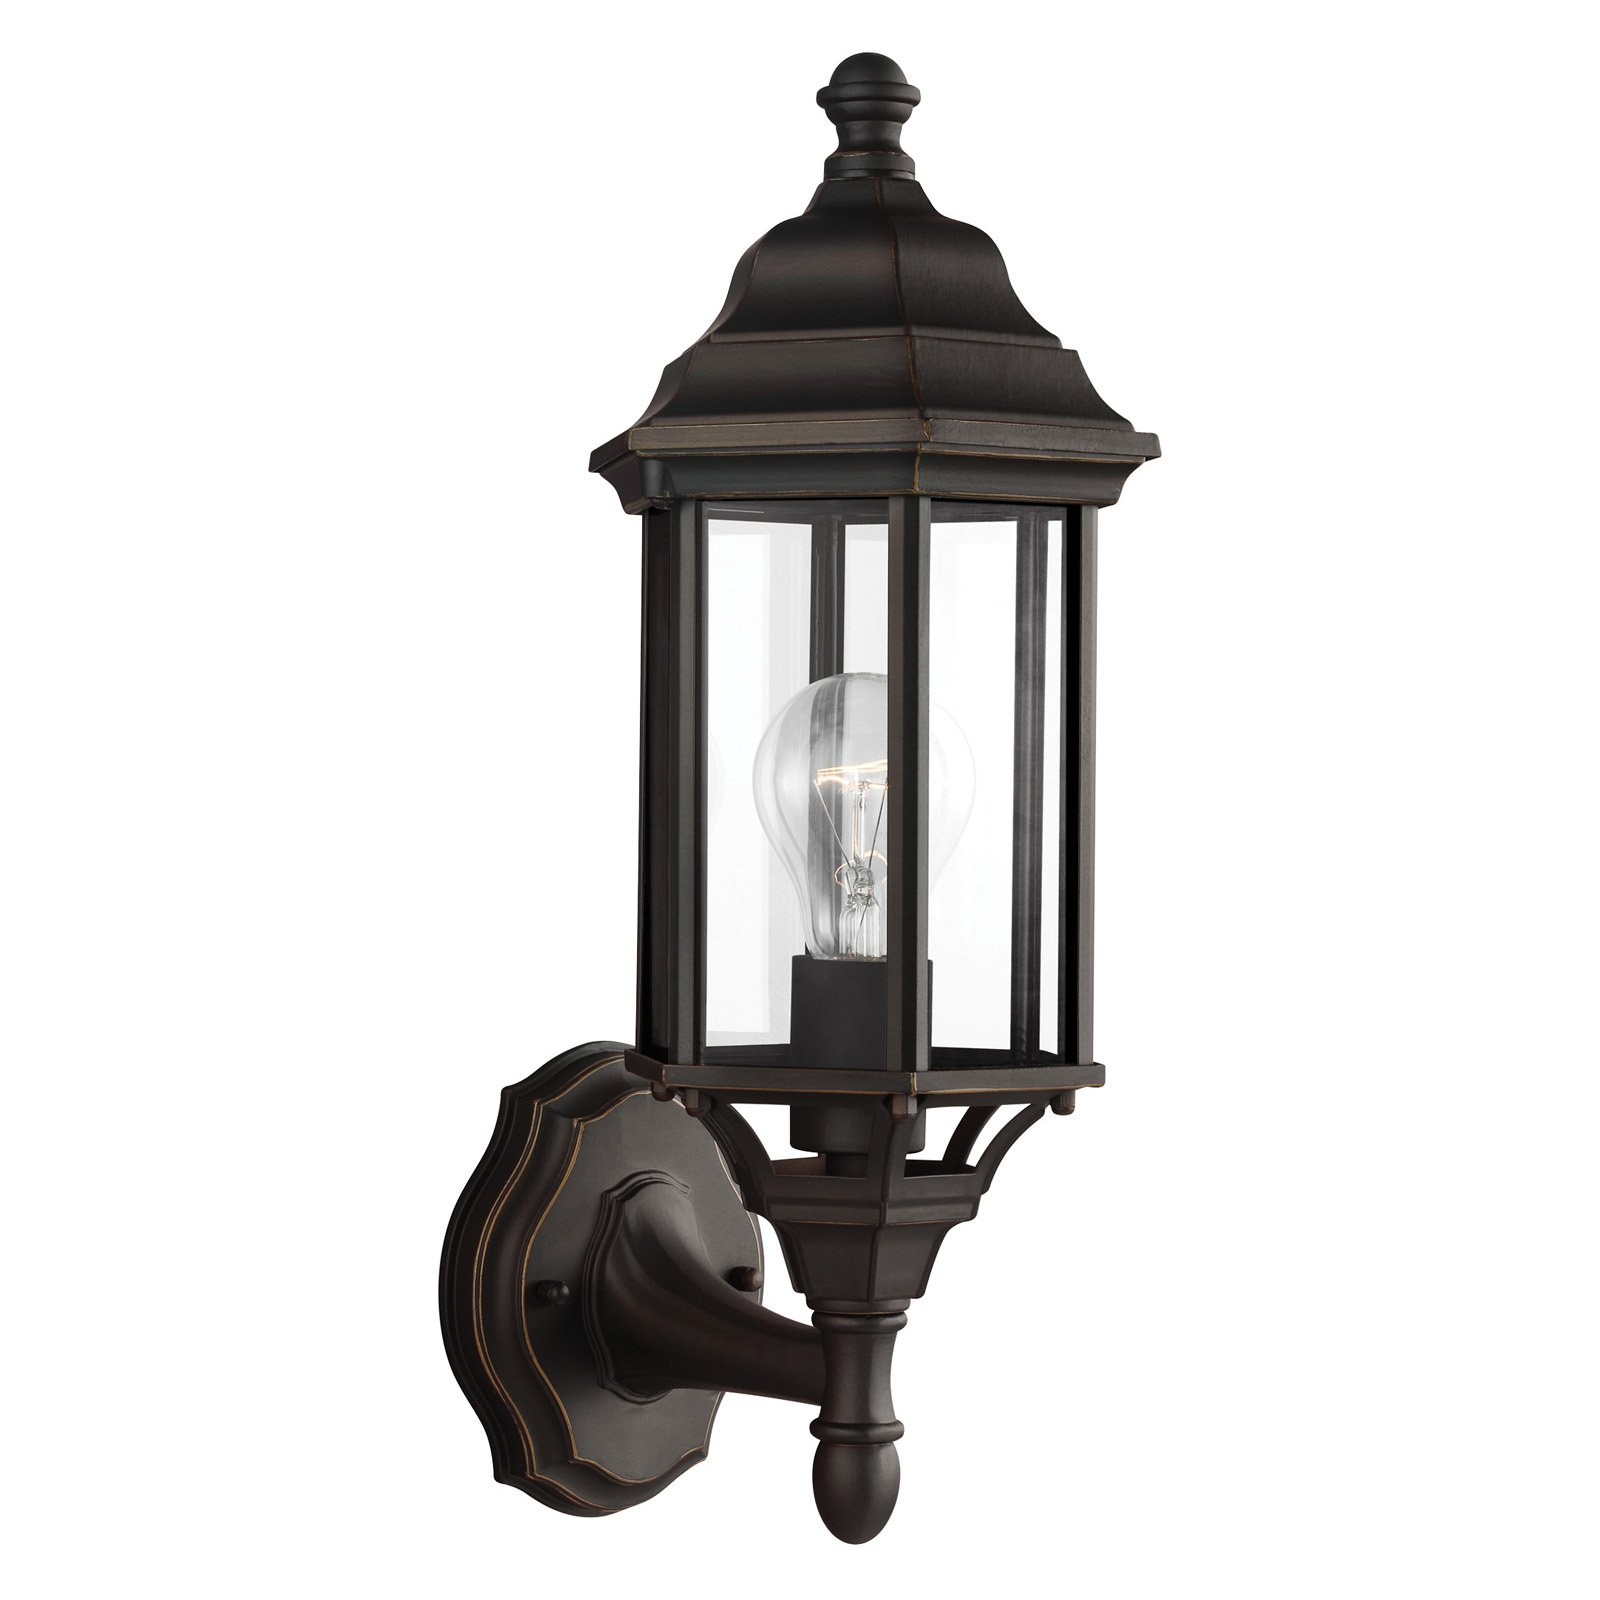 Sea Gull Lighting Sevier 8538701 One Light Outdoor Wall Lantern